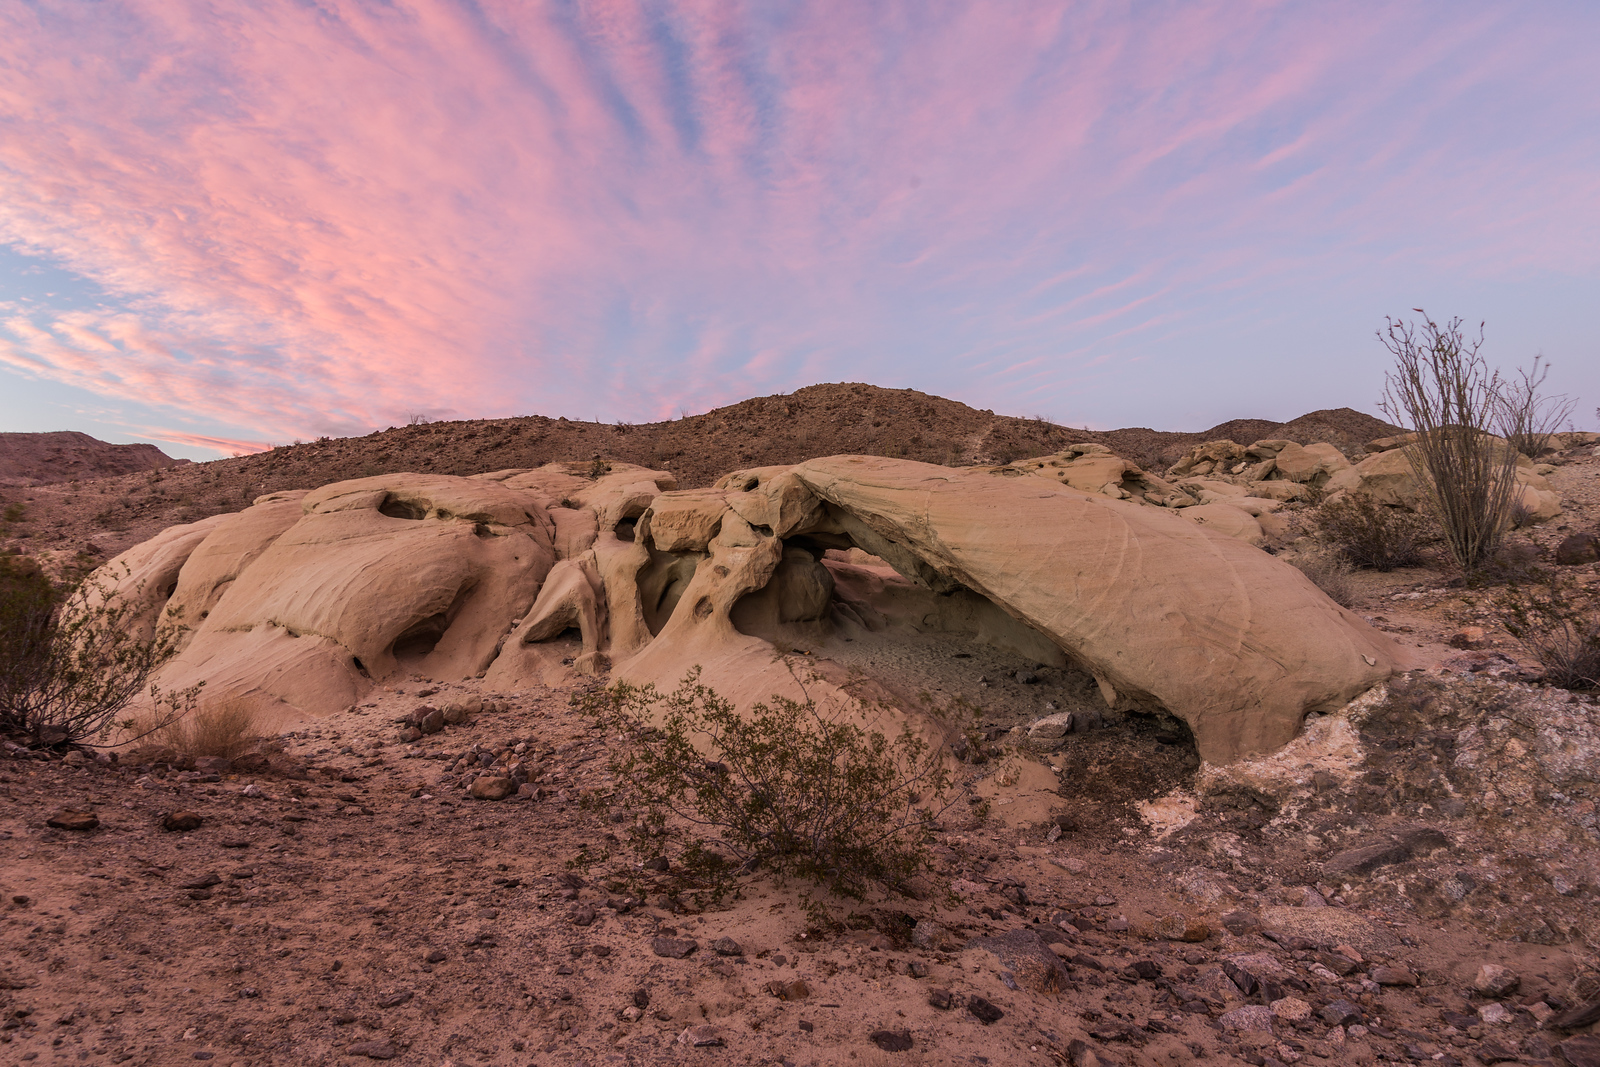 Sandstone Wind Caves in the Anza-Borrego Desert